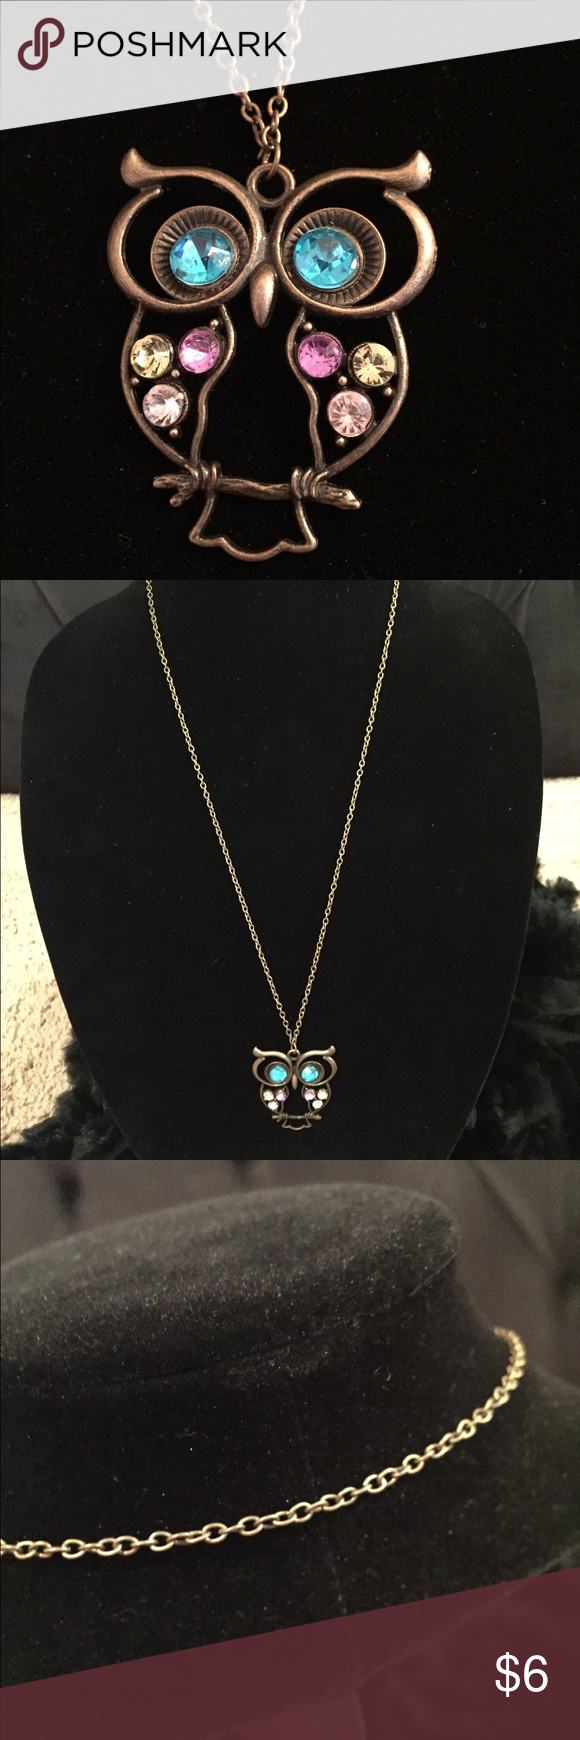 """Claire's Old Gold Owl Pendant Necklace Claire's Old Gold Owl Pendant Necklace! Simple but fun owl pendant necklace in old gold with multicolored gems. Necklace is 16"""" with no closure/slip on. Buy more and save more with my jewelry bundling deals! 😊💎💖 Claire's Jewelry Necklaces"""